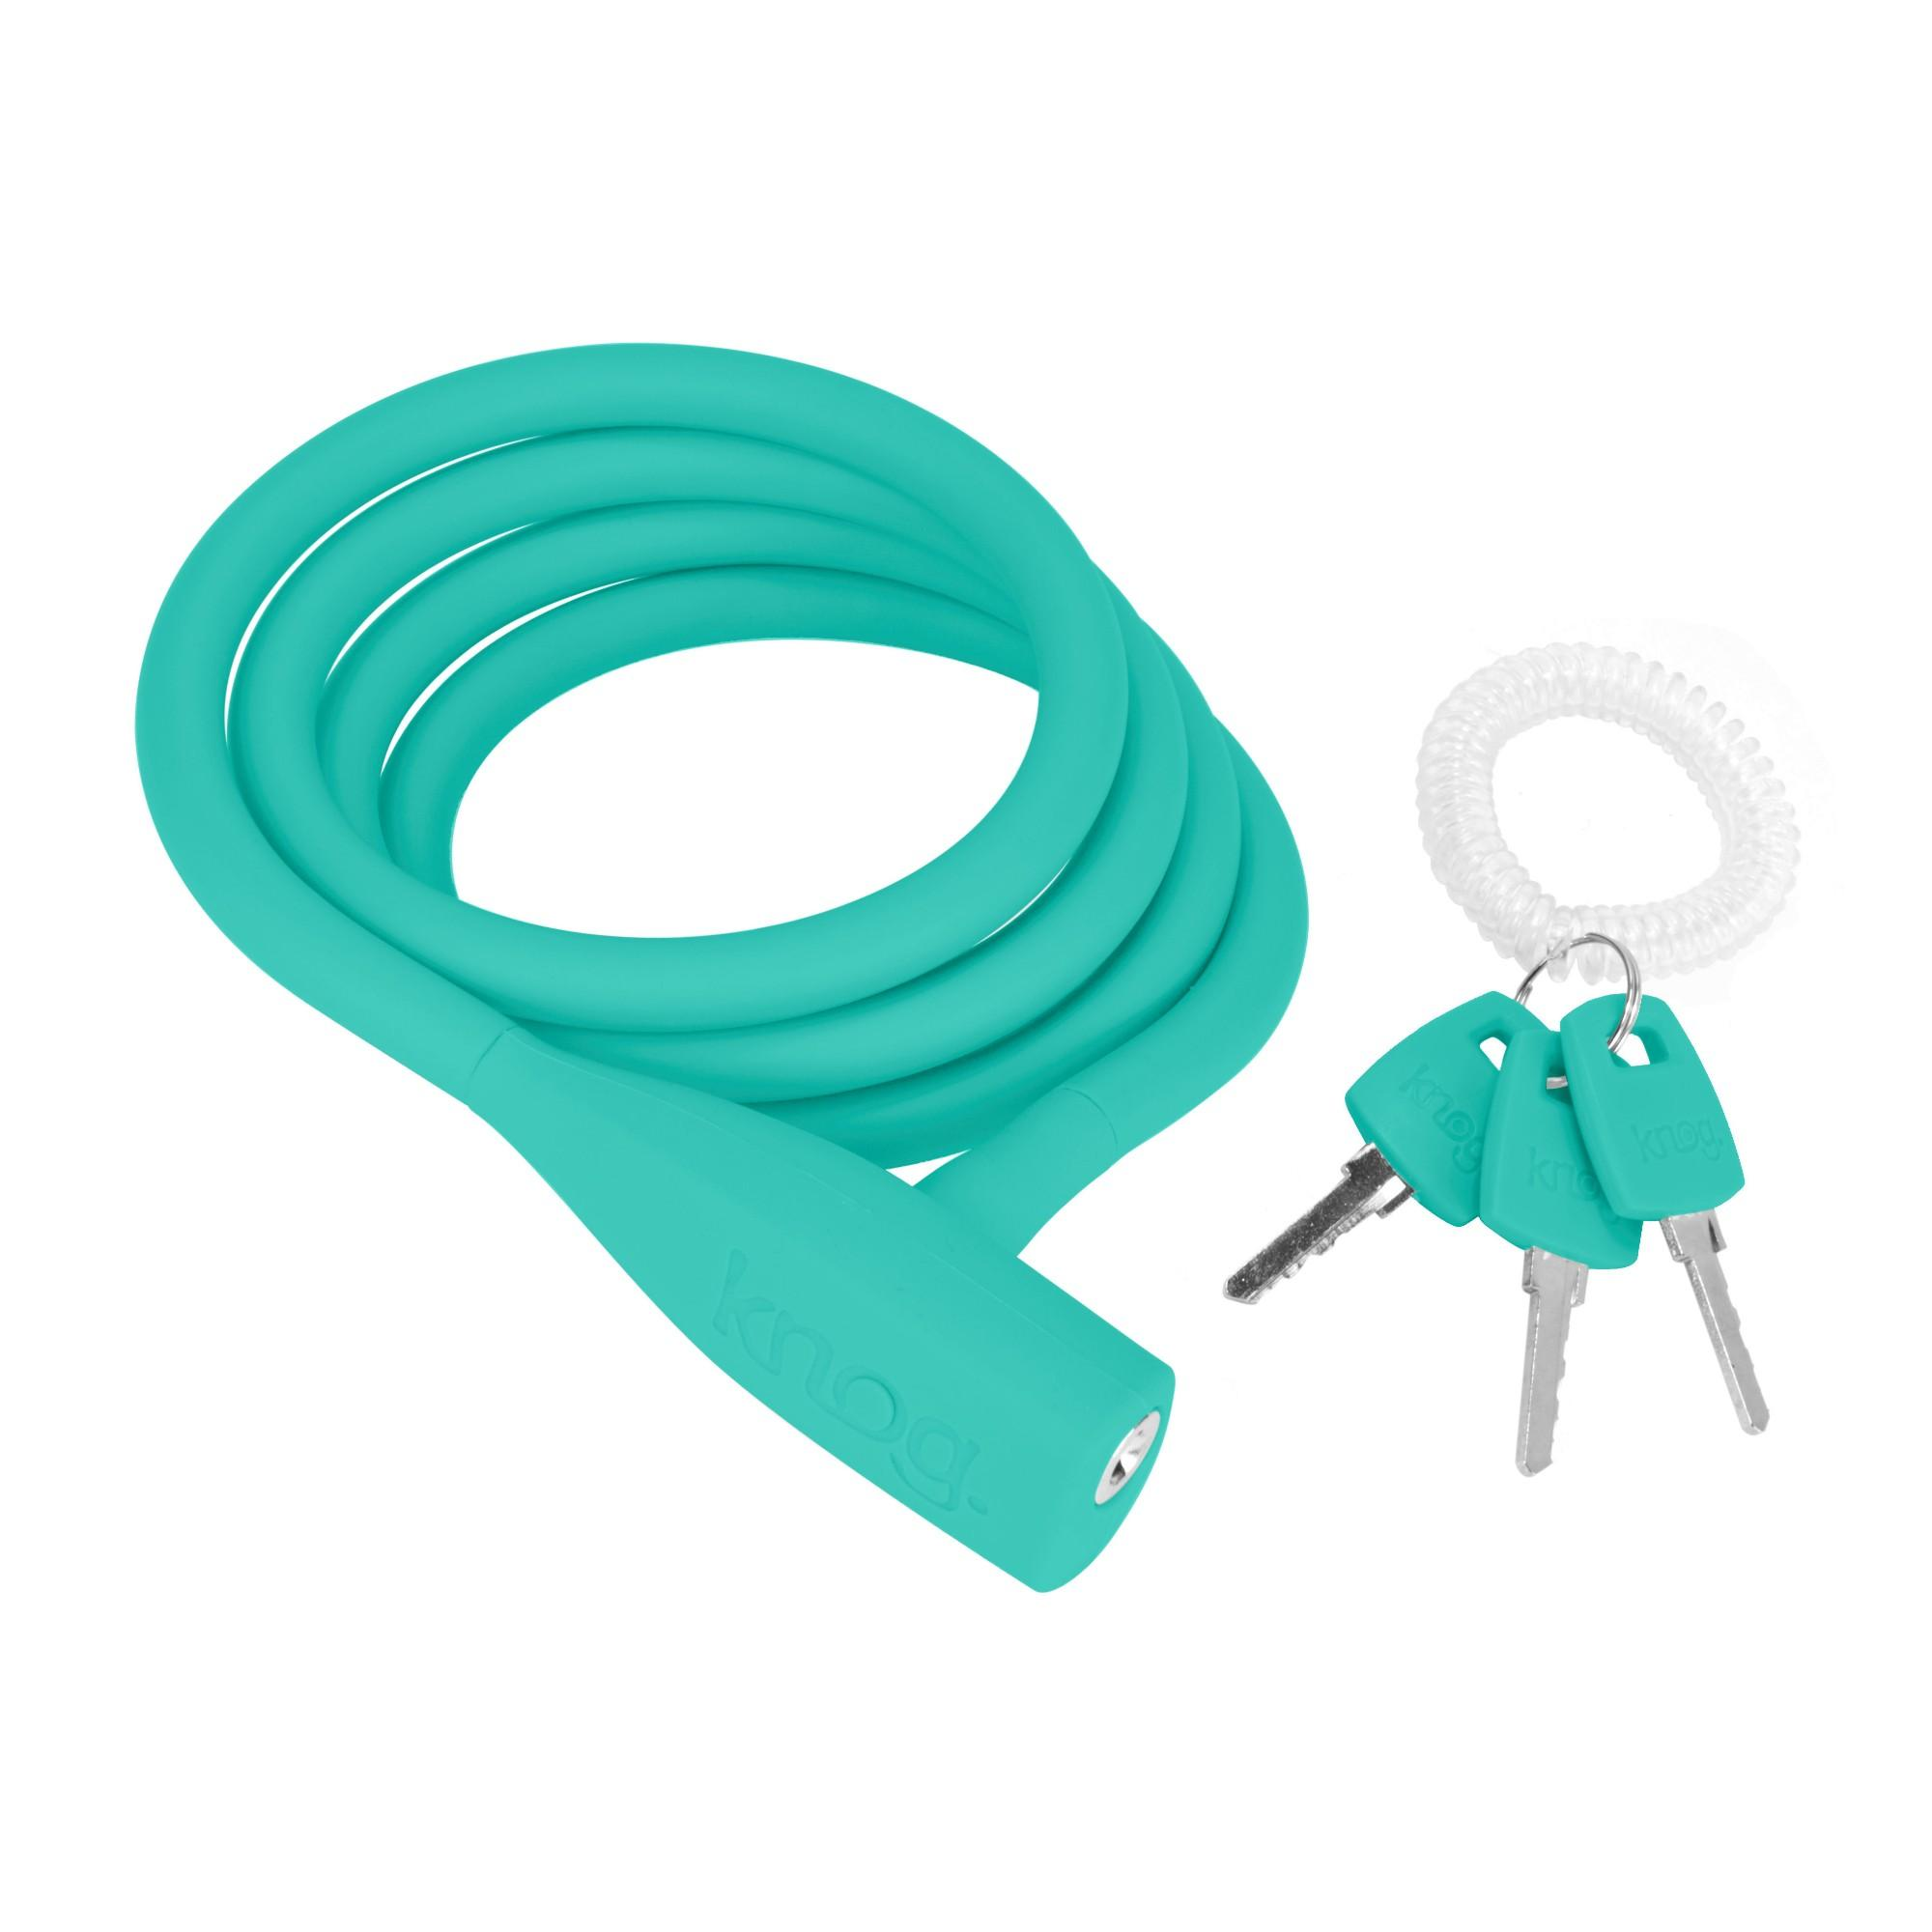 Knog Party Coil Cable Bike Lock Turquoise   Silverfish UK